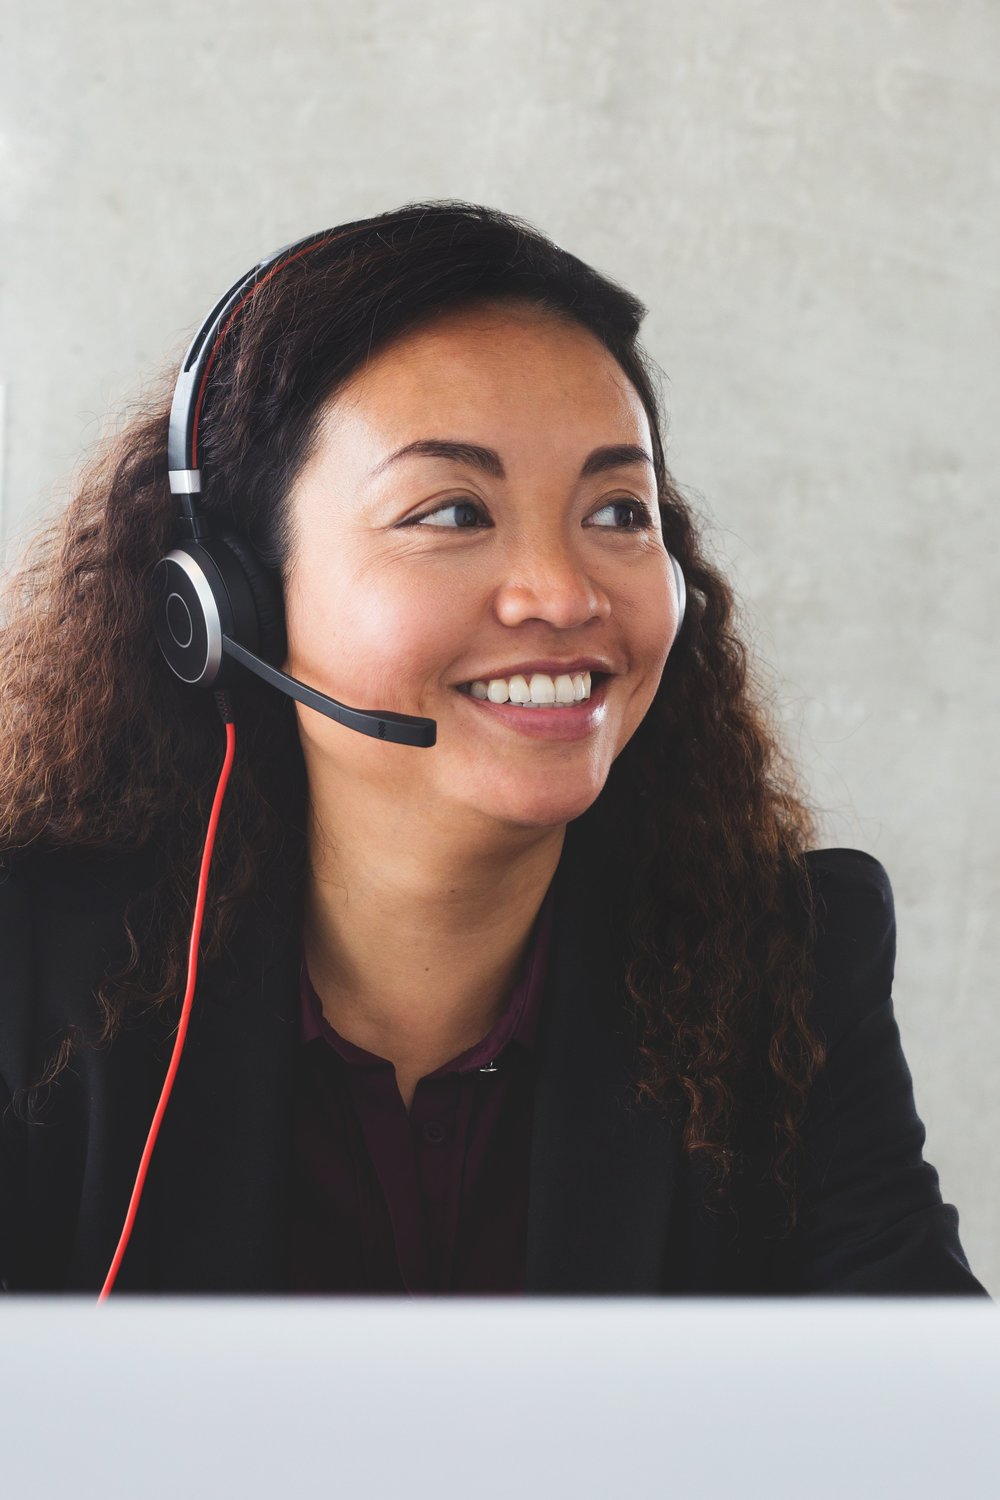 customer-service-rep-on-headset_4460x4460.jpg